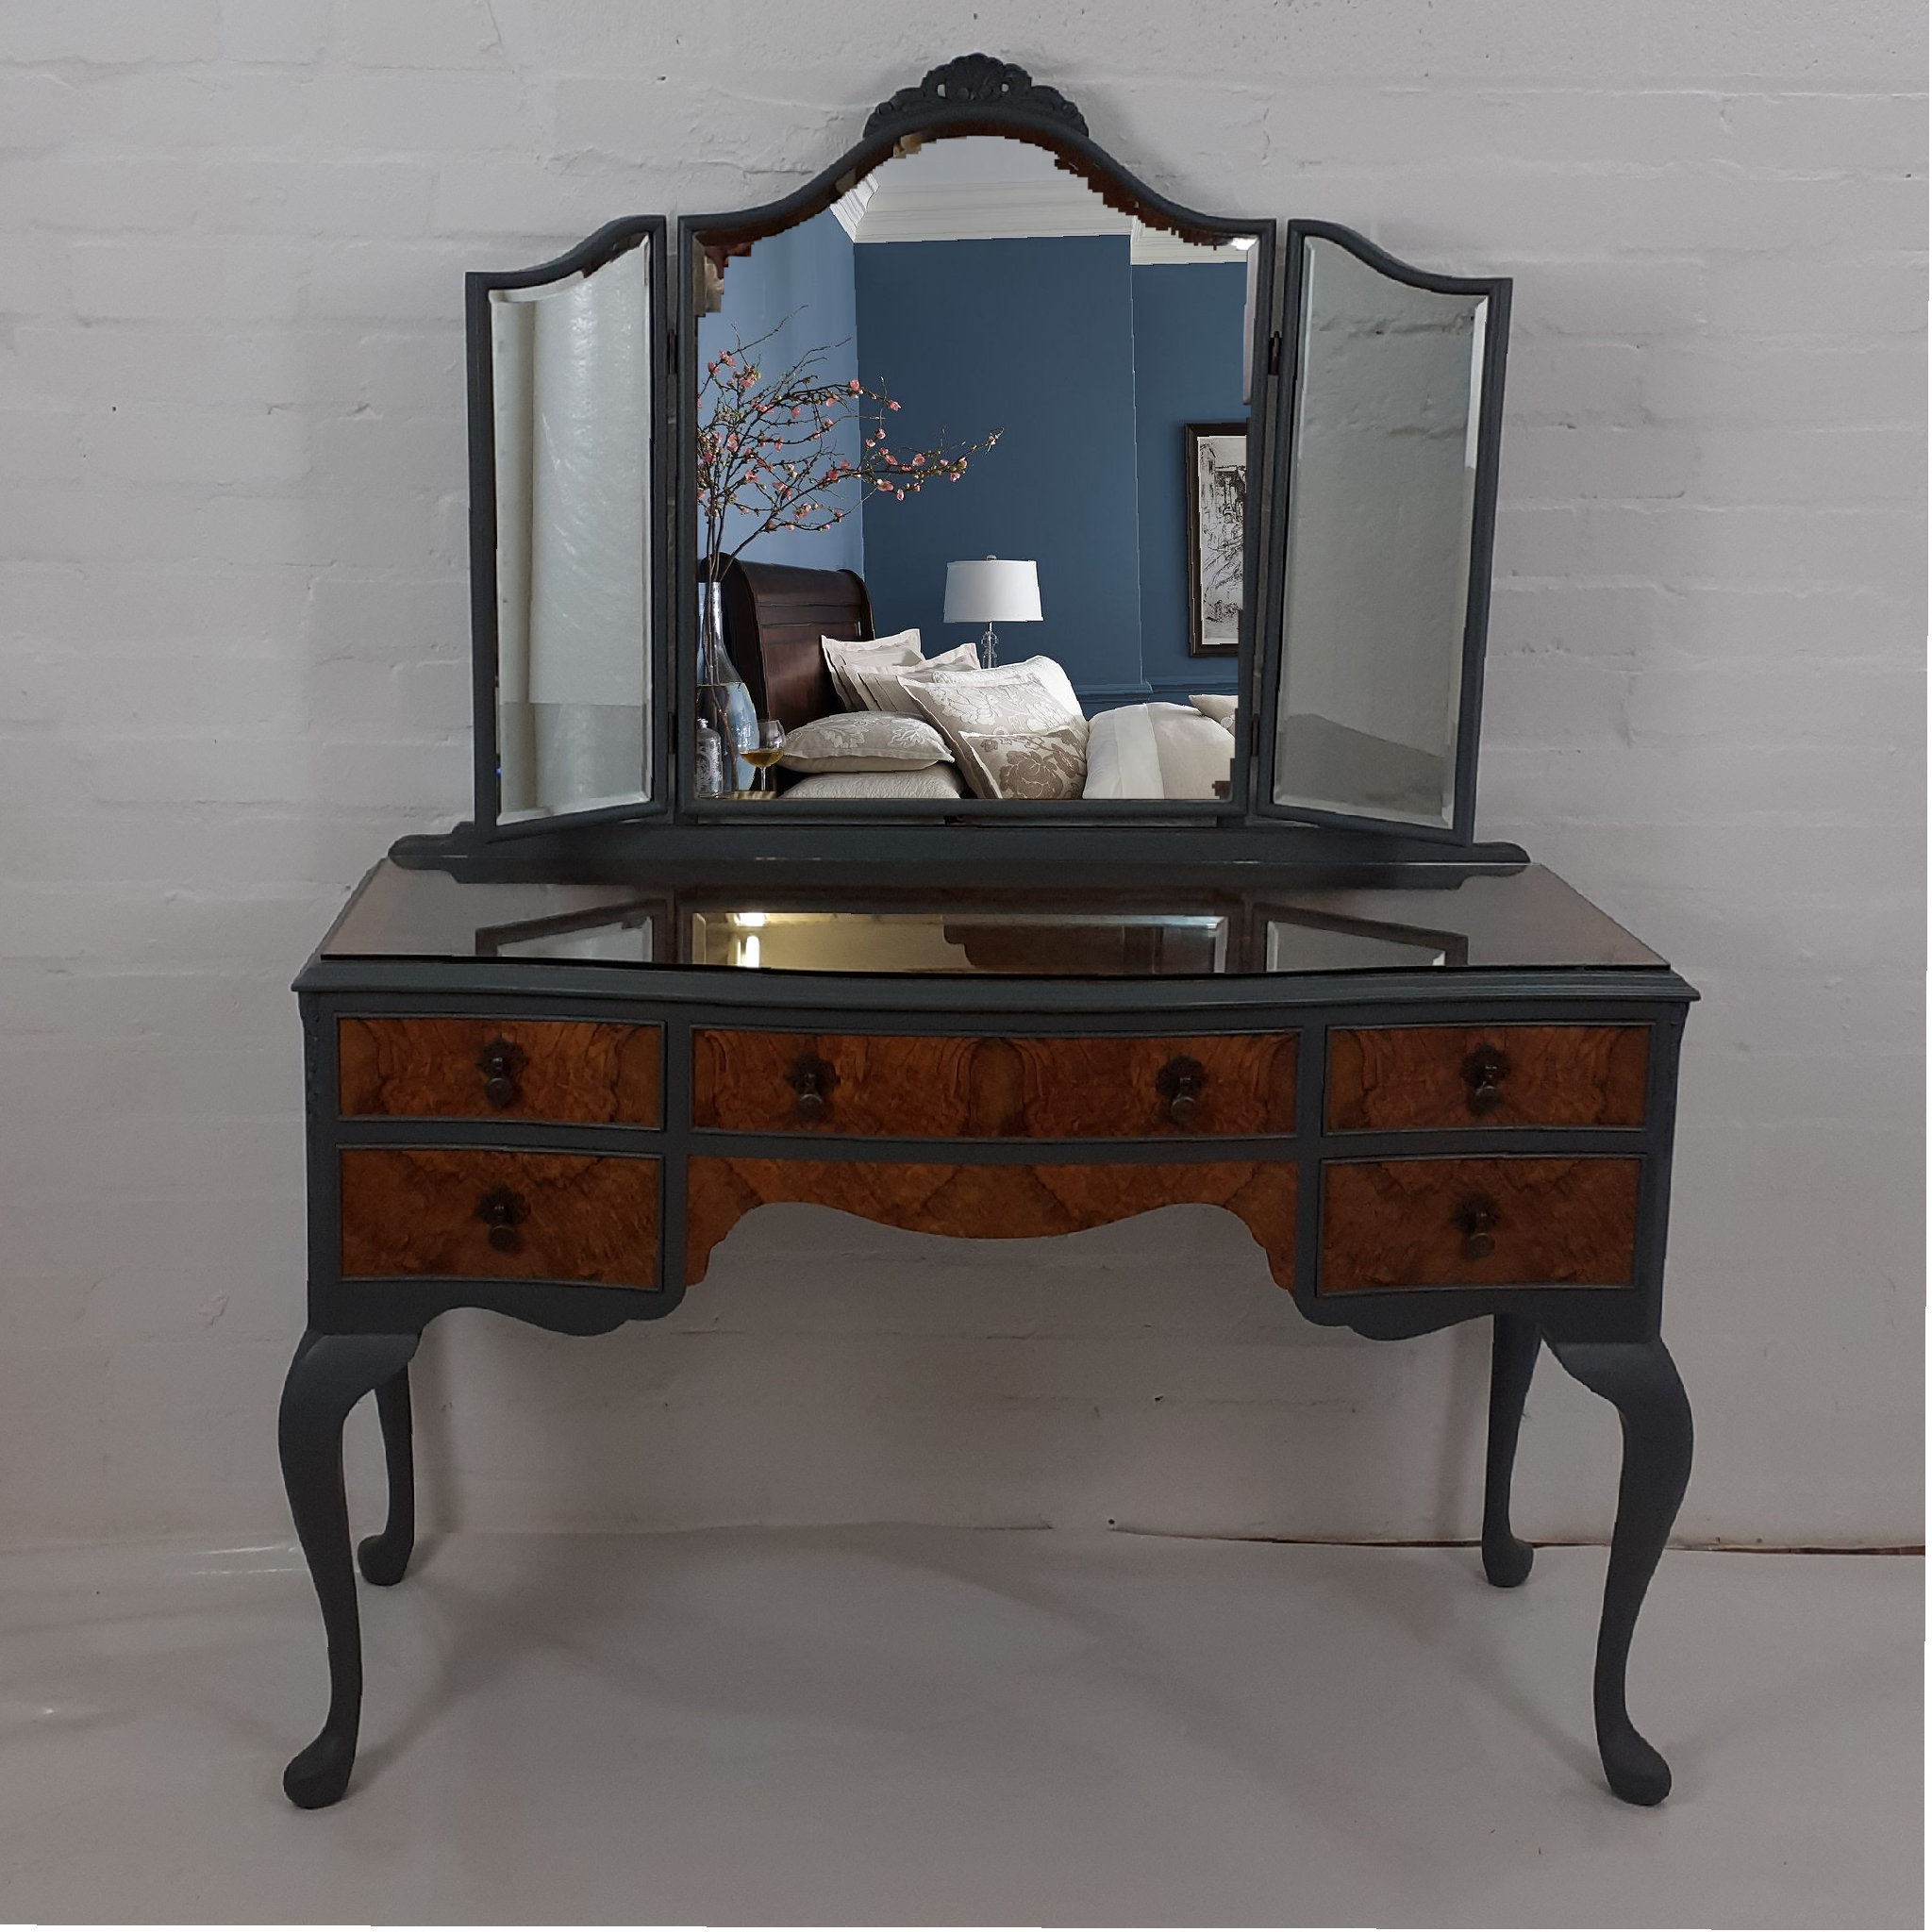 The House of Upcycling: Copper & Ash Refinished Vintage Dressing Table